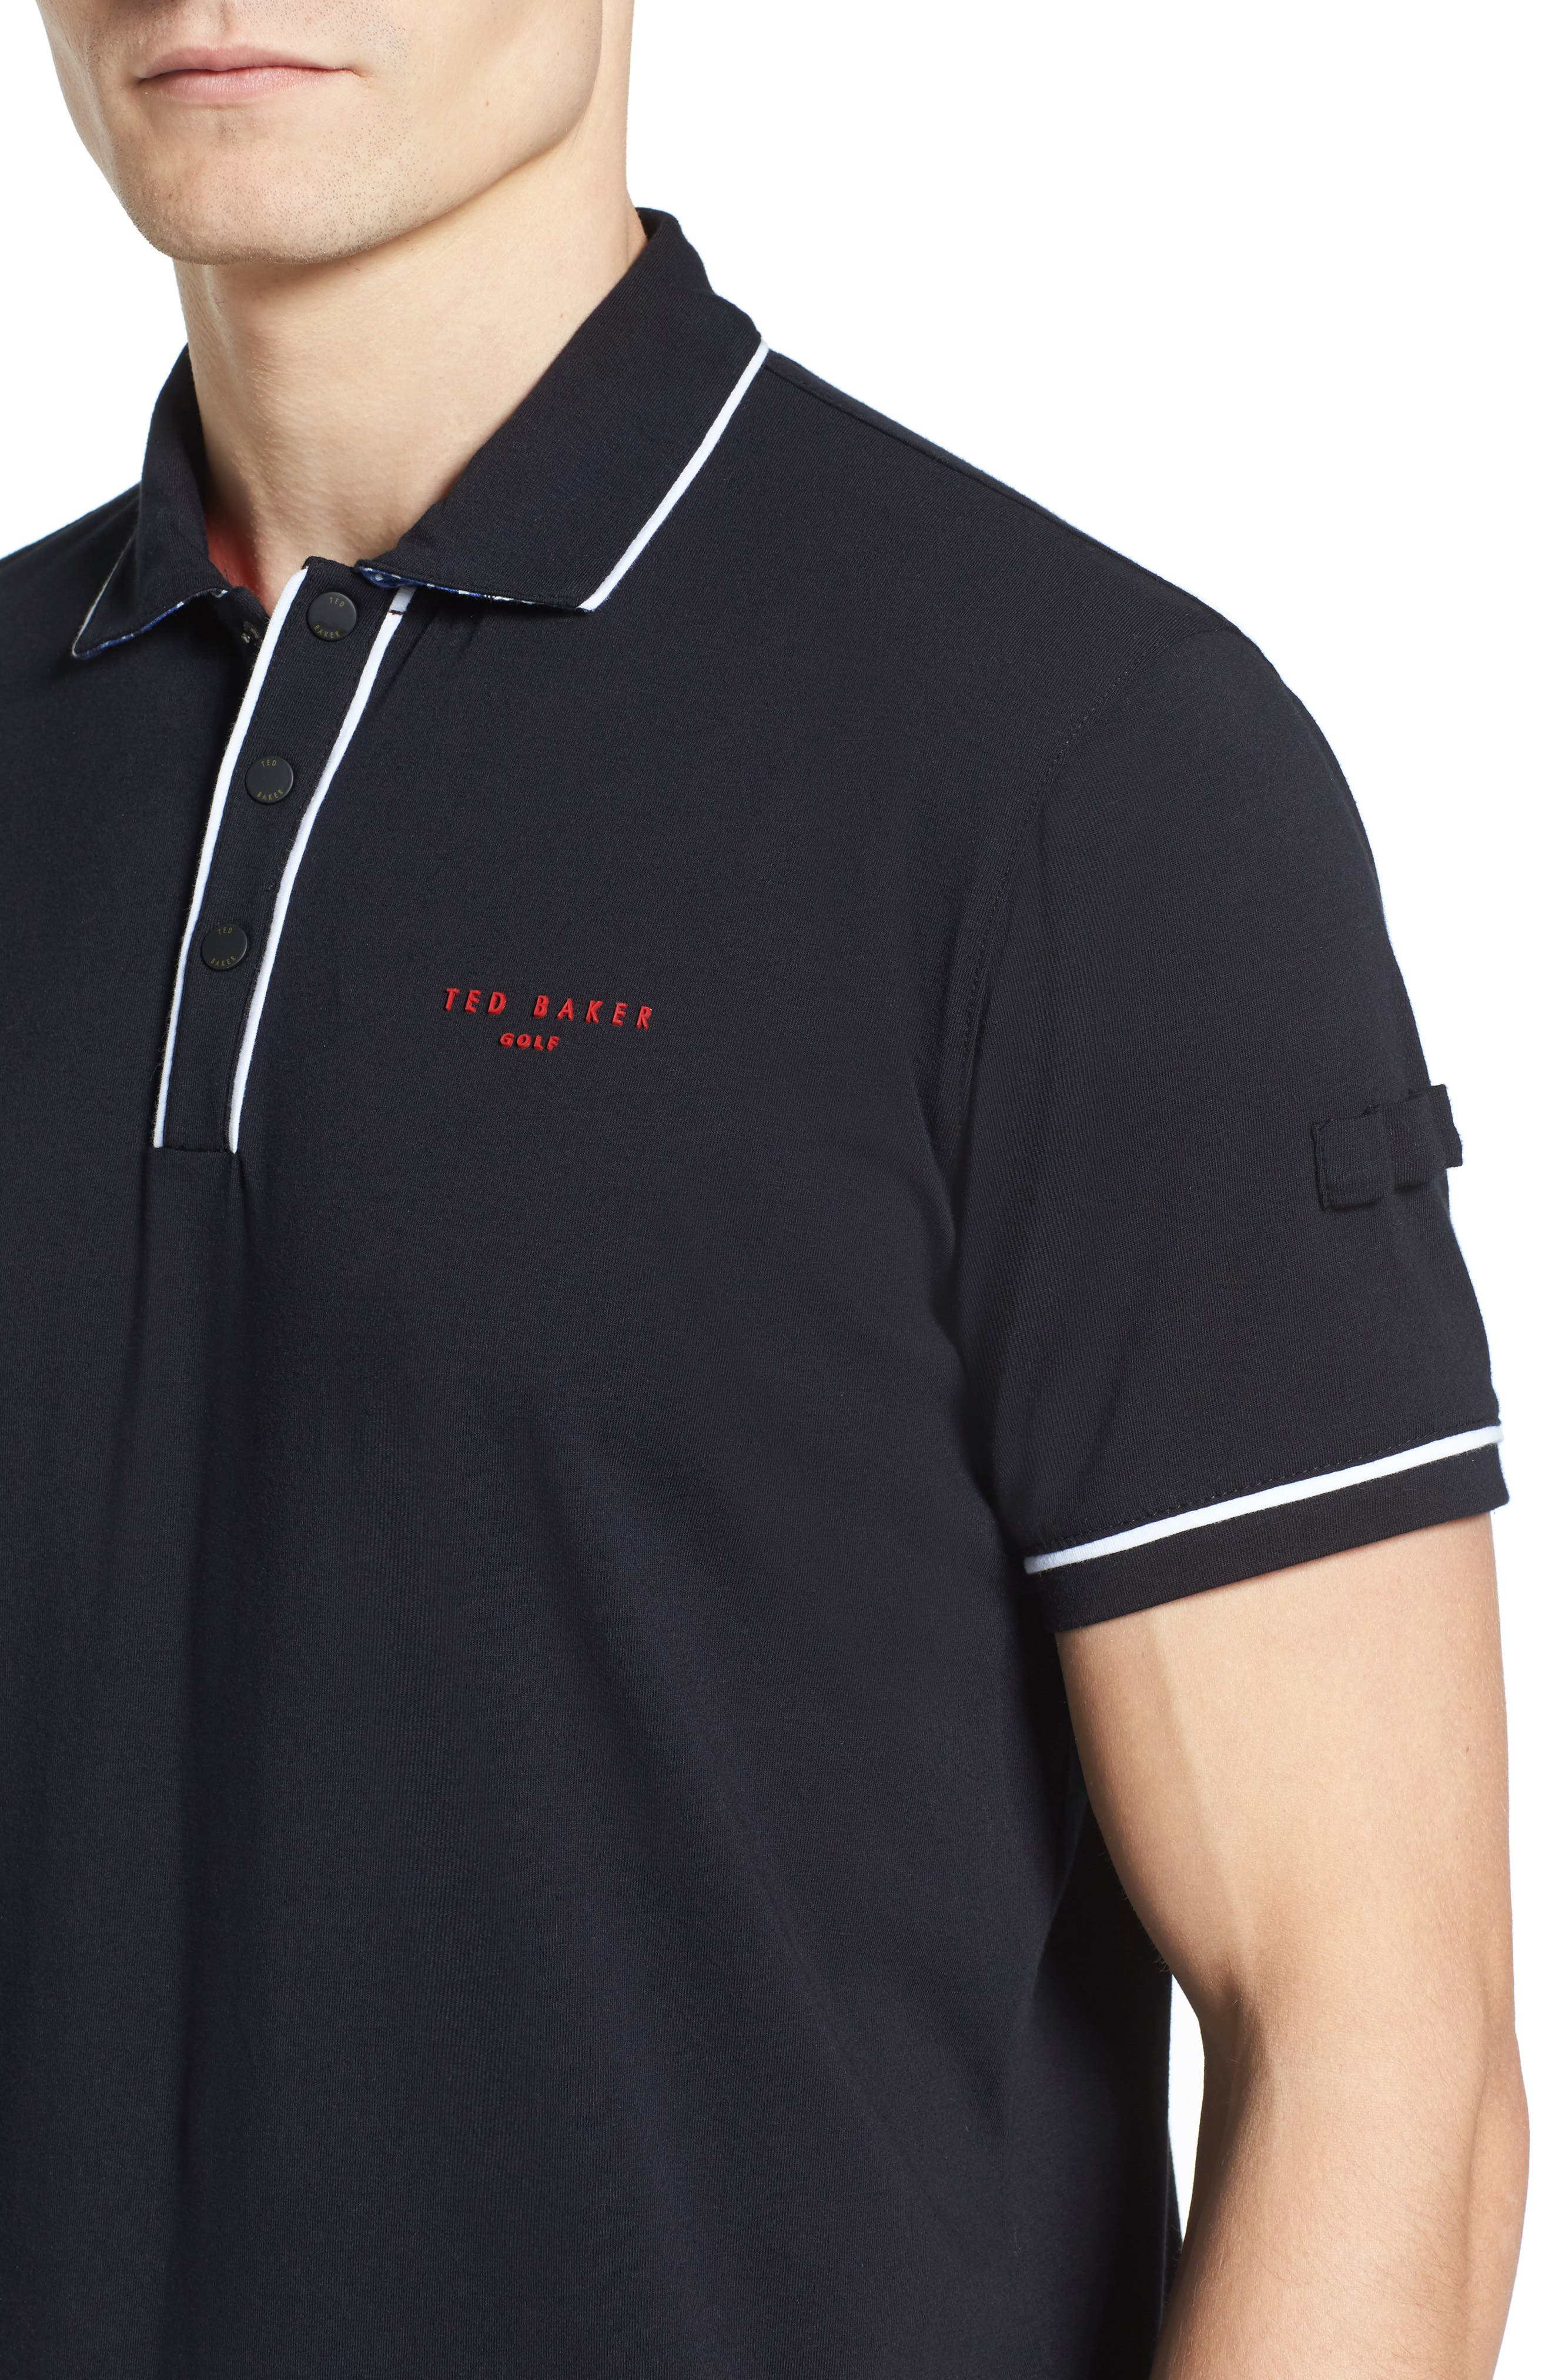 Playgo Piped Trim Golf Polo,                             Alternate thumbnail 4, color,                             001